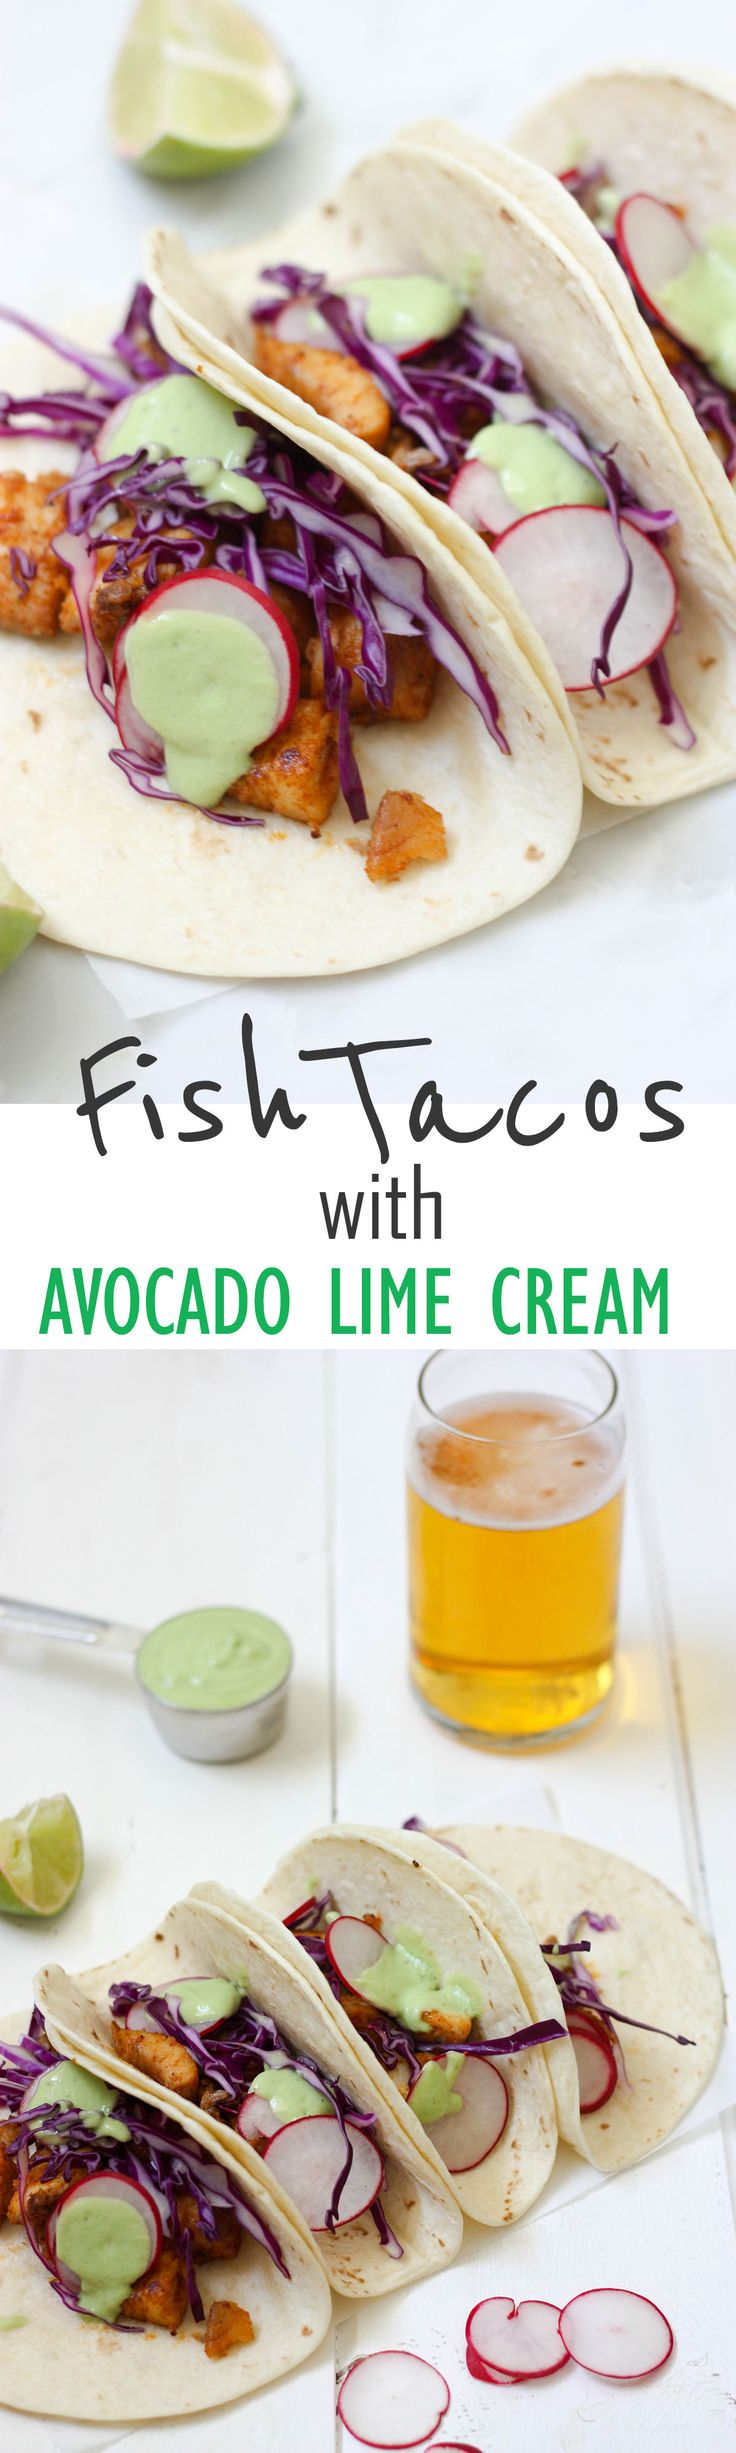 Quick, easy, delicious, perfect for summer Fish Tacos with Avocado Lime Cream www.thehomecokskitchen.com